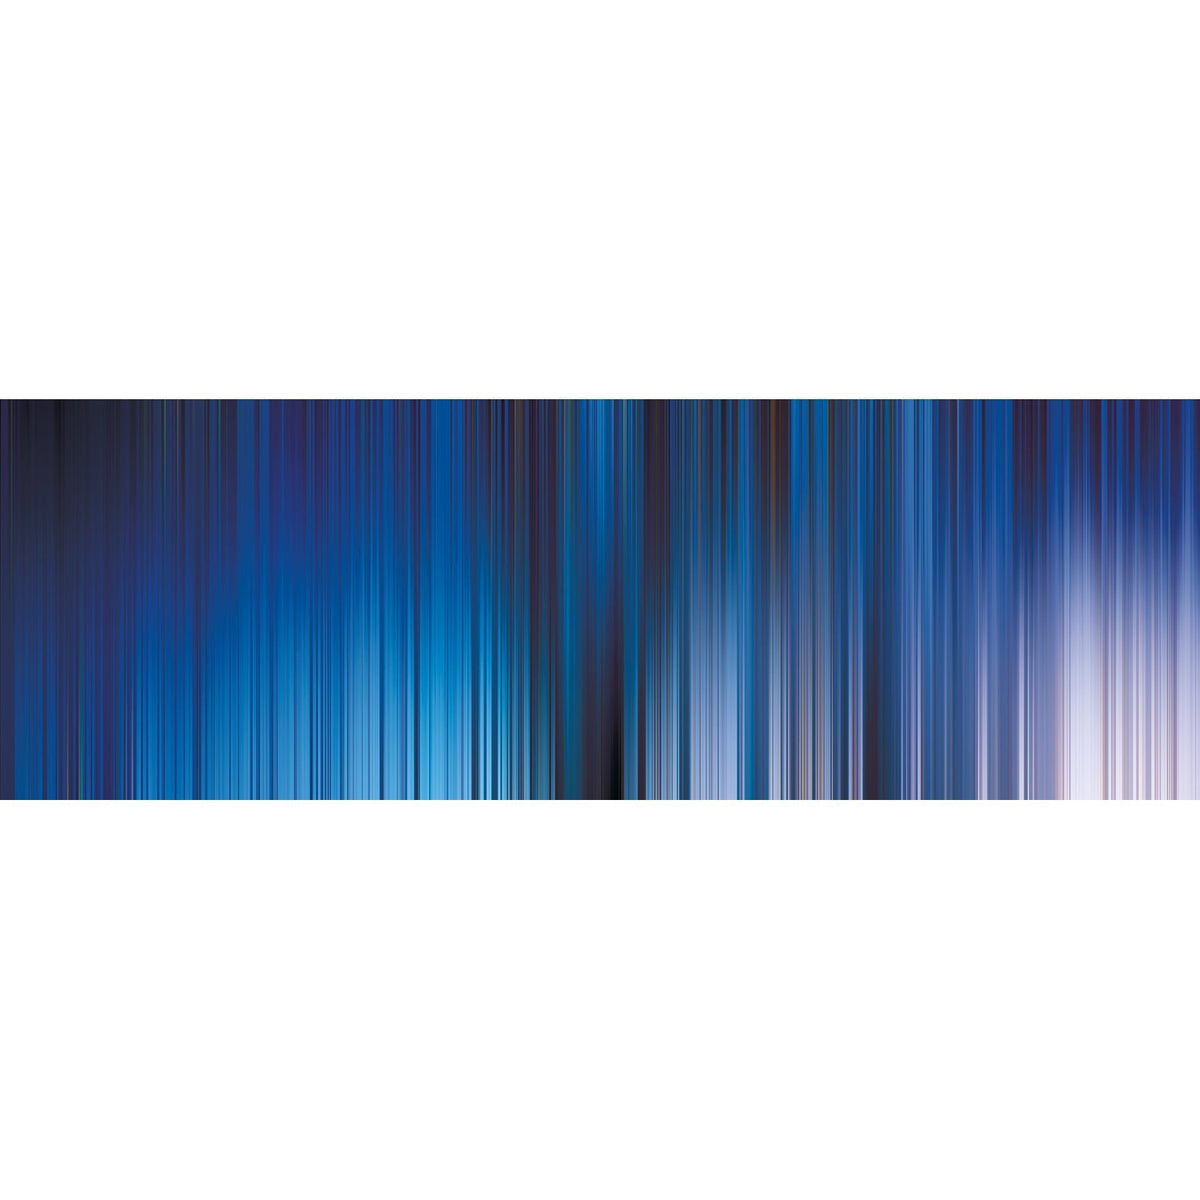 Wall Acoustics Full Size Mural Muffle Abstract Mural - Kinetic Blue Full Size Mural